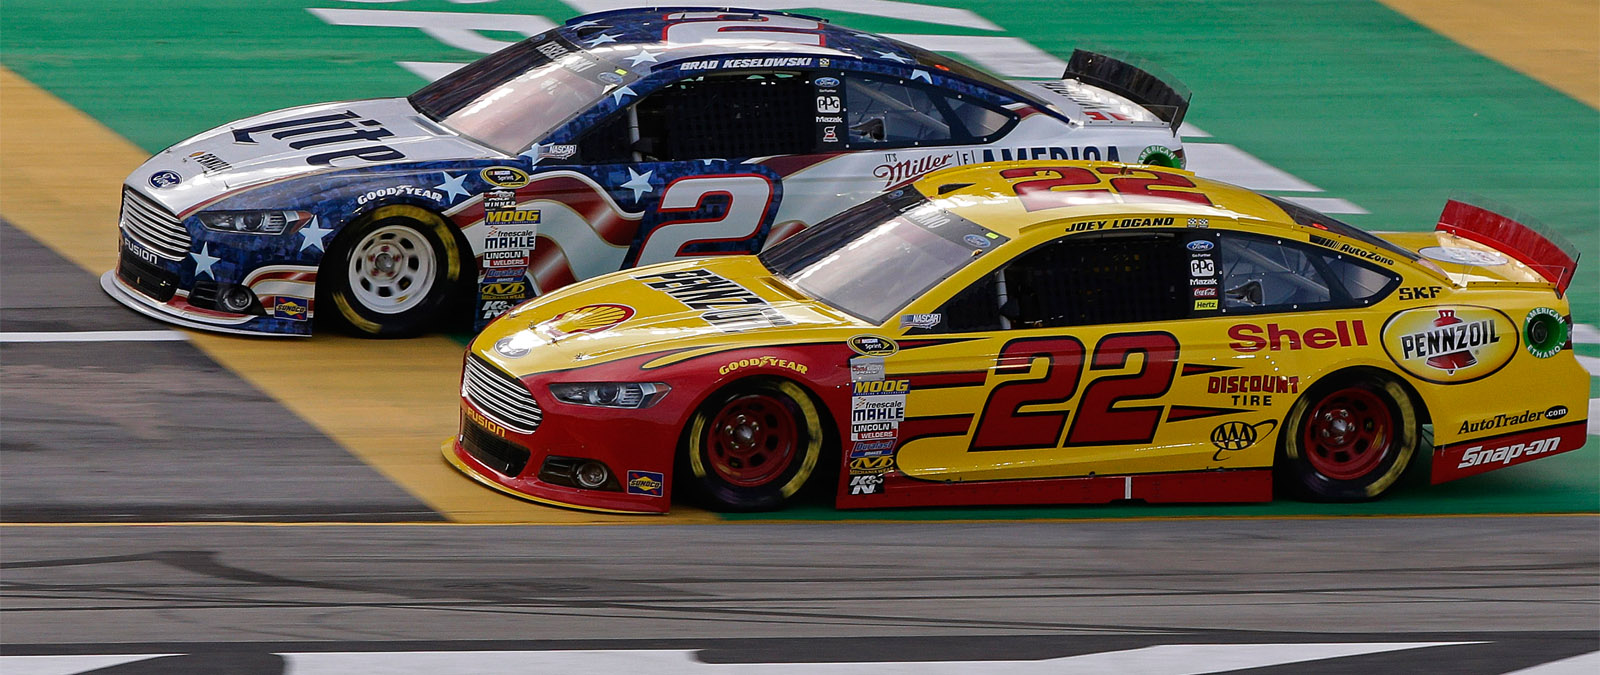 Logano and Keselowski Racing at Kentucky